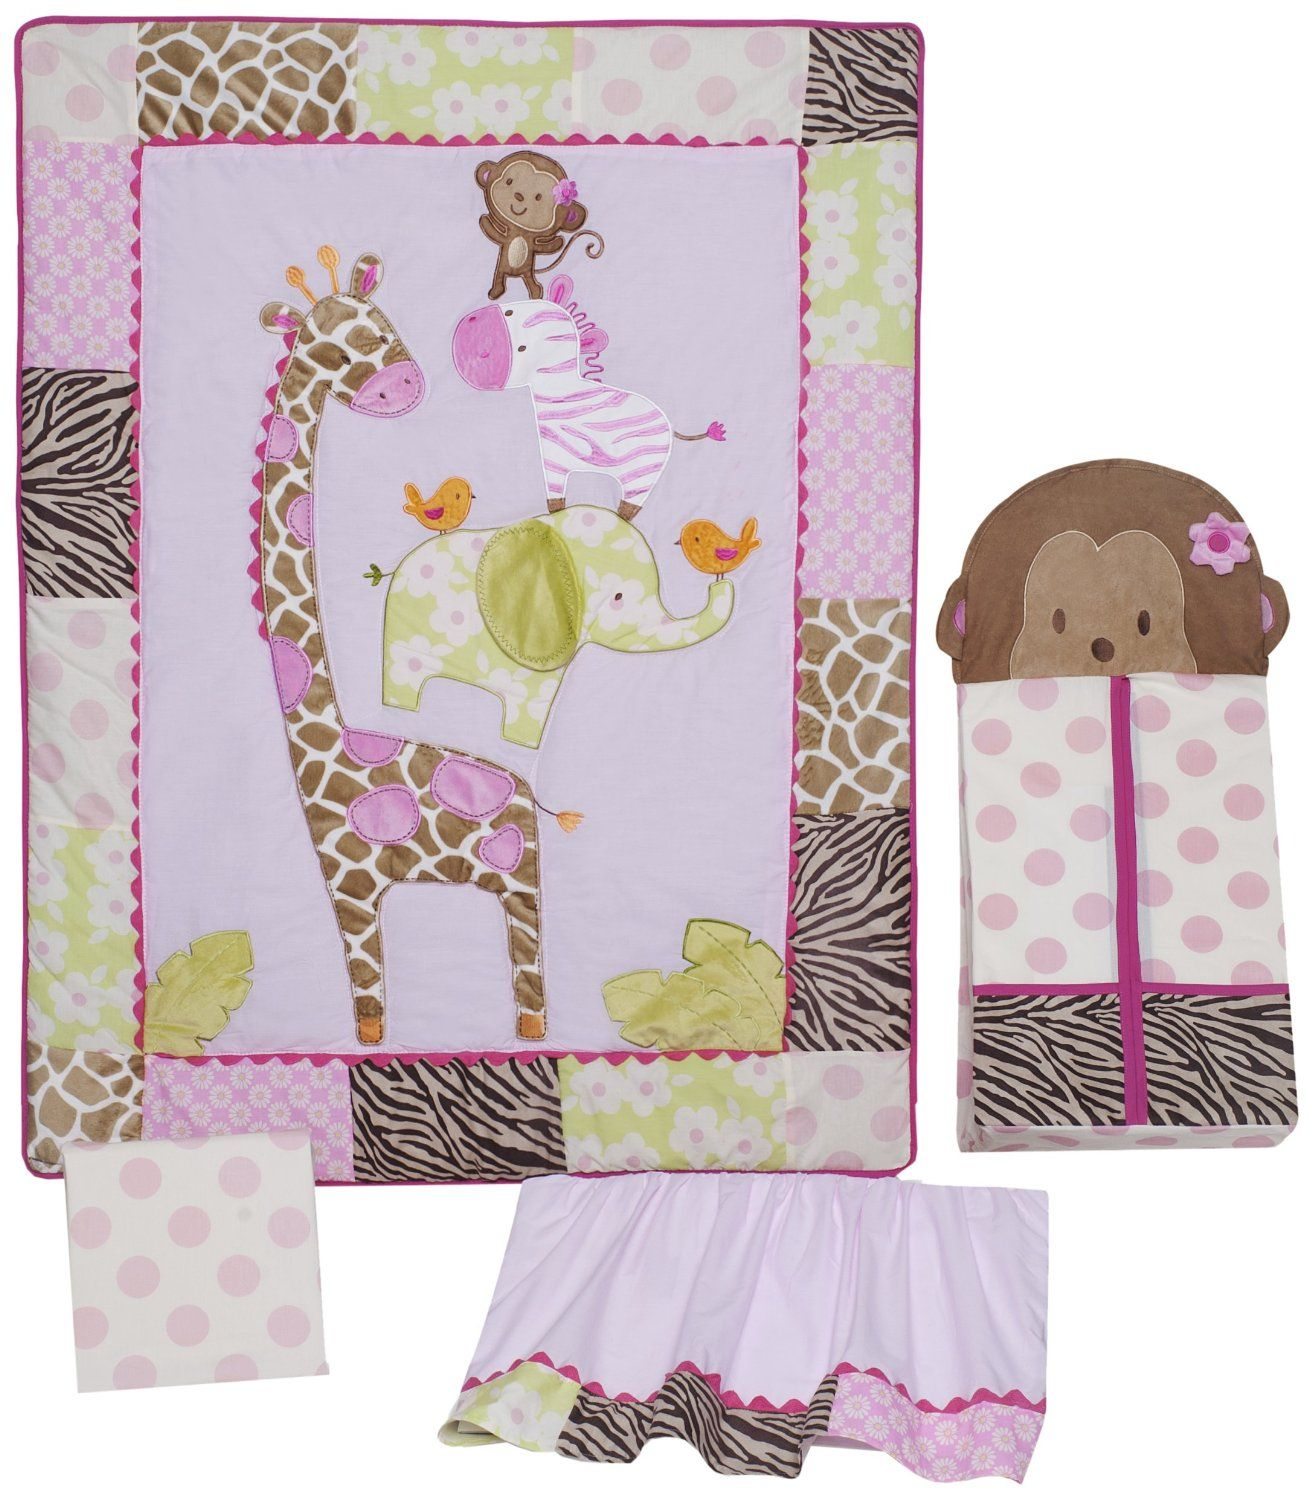 Monkey crib bedding for girl babies - Carters Jungle Collection Baby Bedding For Girlscrib